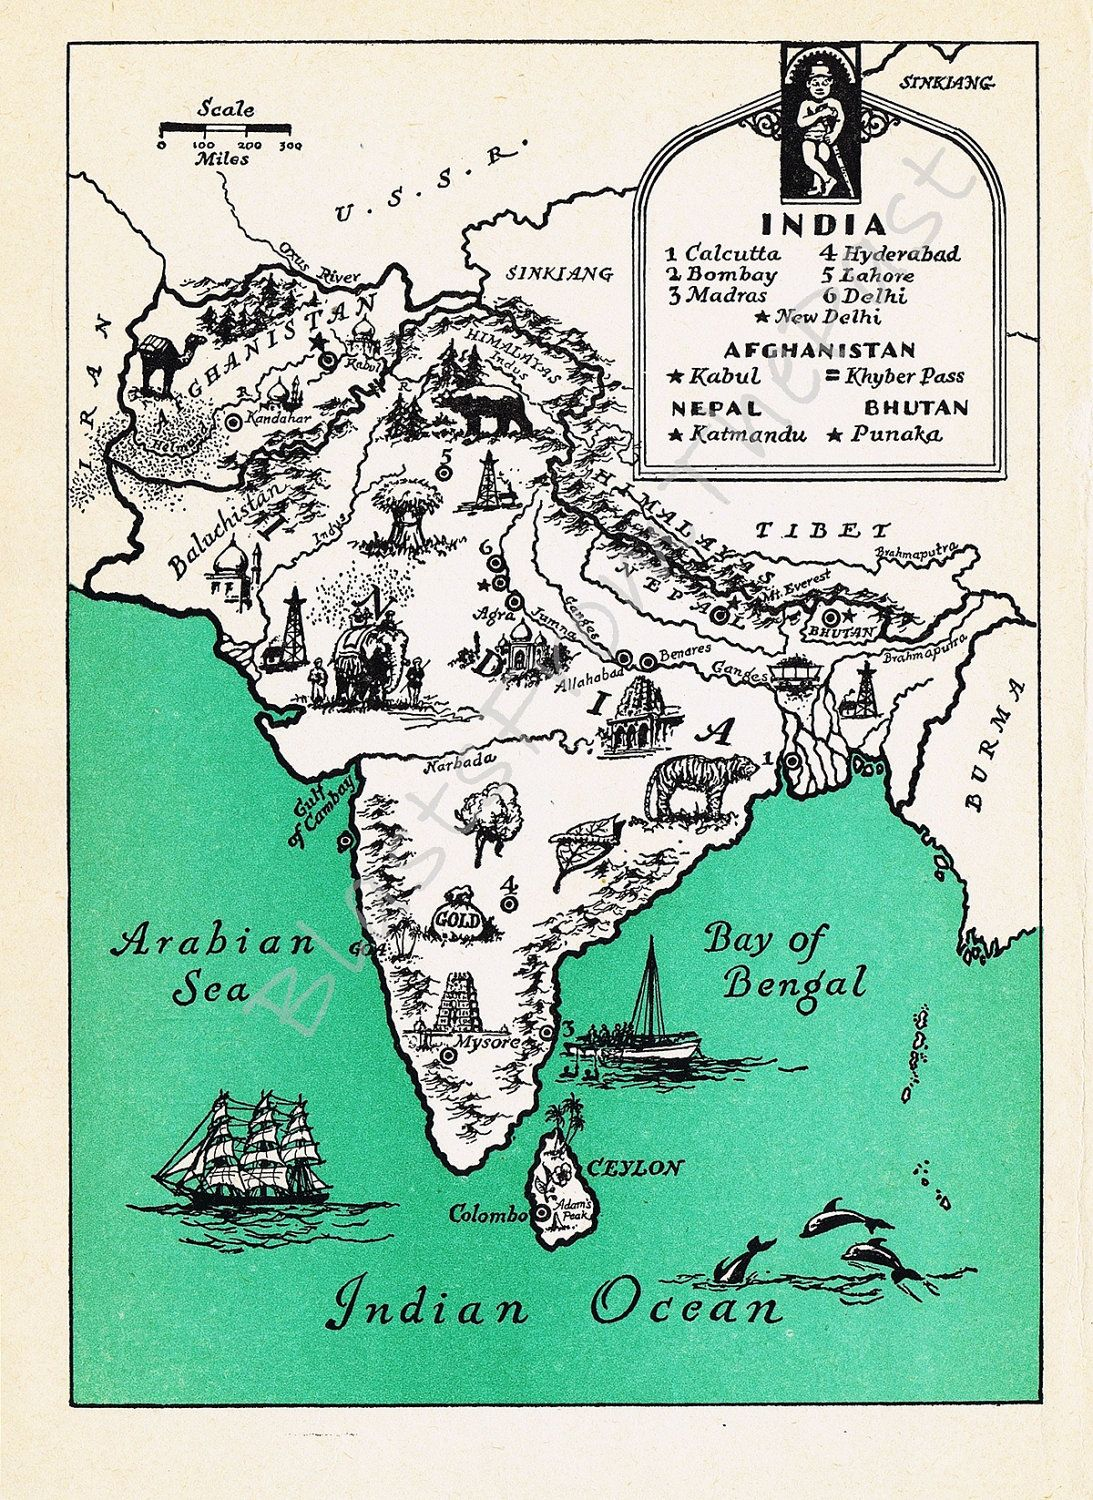 Vintage map of india beautifully illustrated perfect for framing vintage map of india beautifully illustrated perfect for framing altered arts world gumiabroncs Gallery